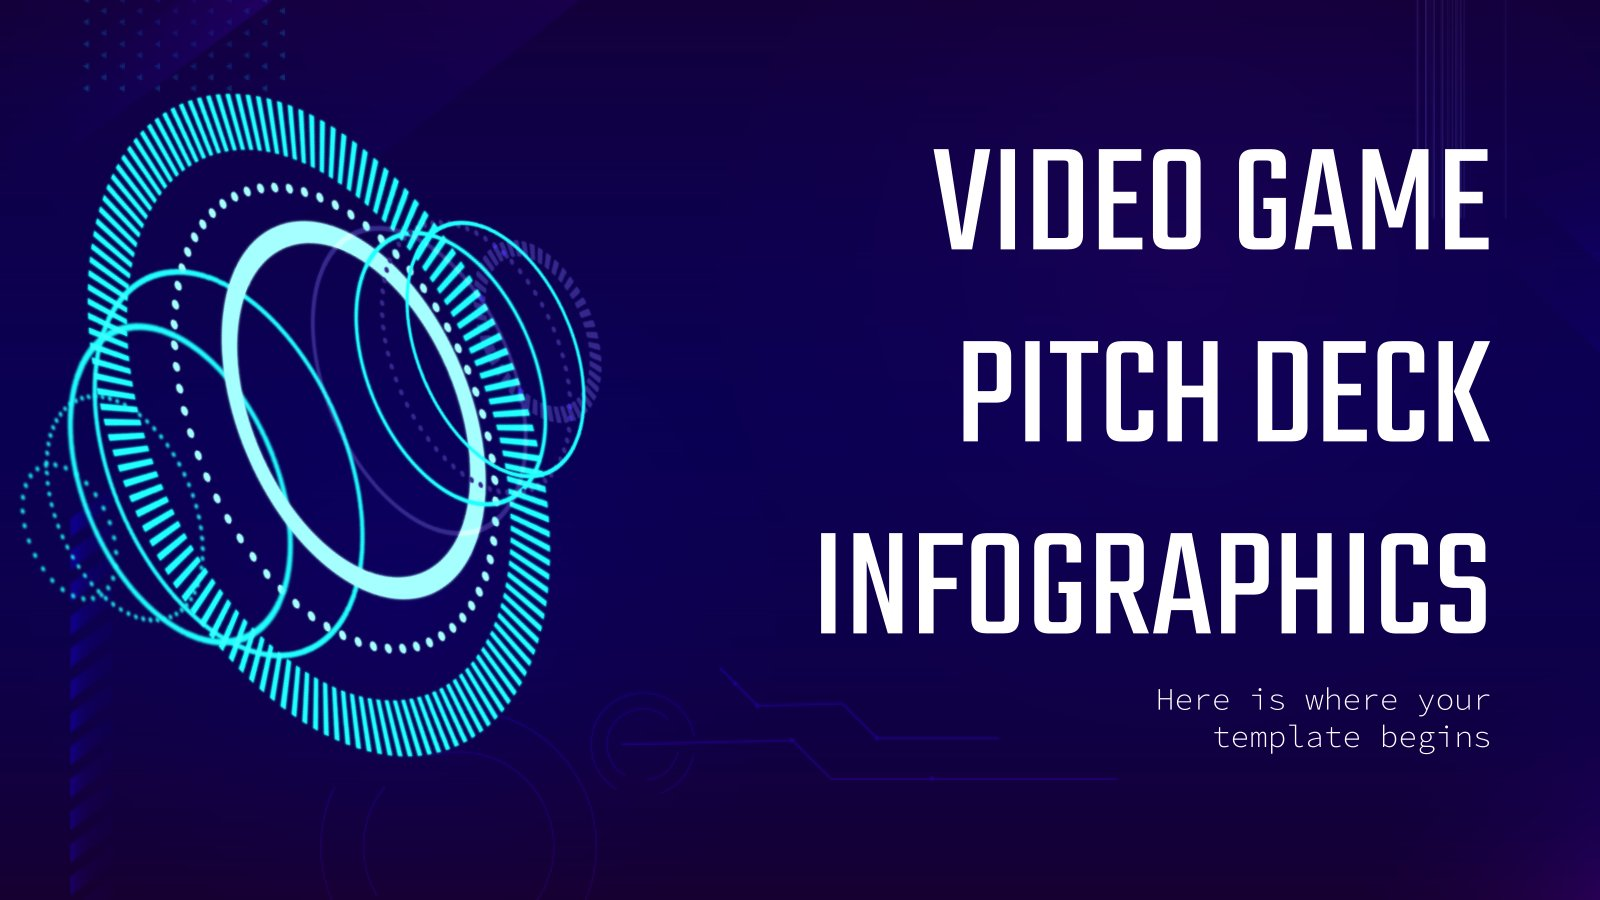 Video Game Pitch Deck Infographics presentation template